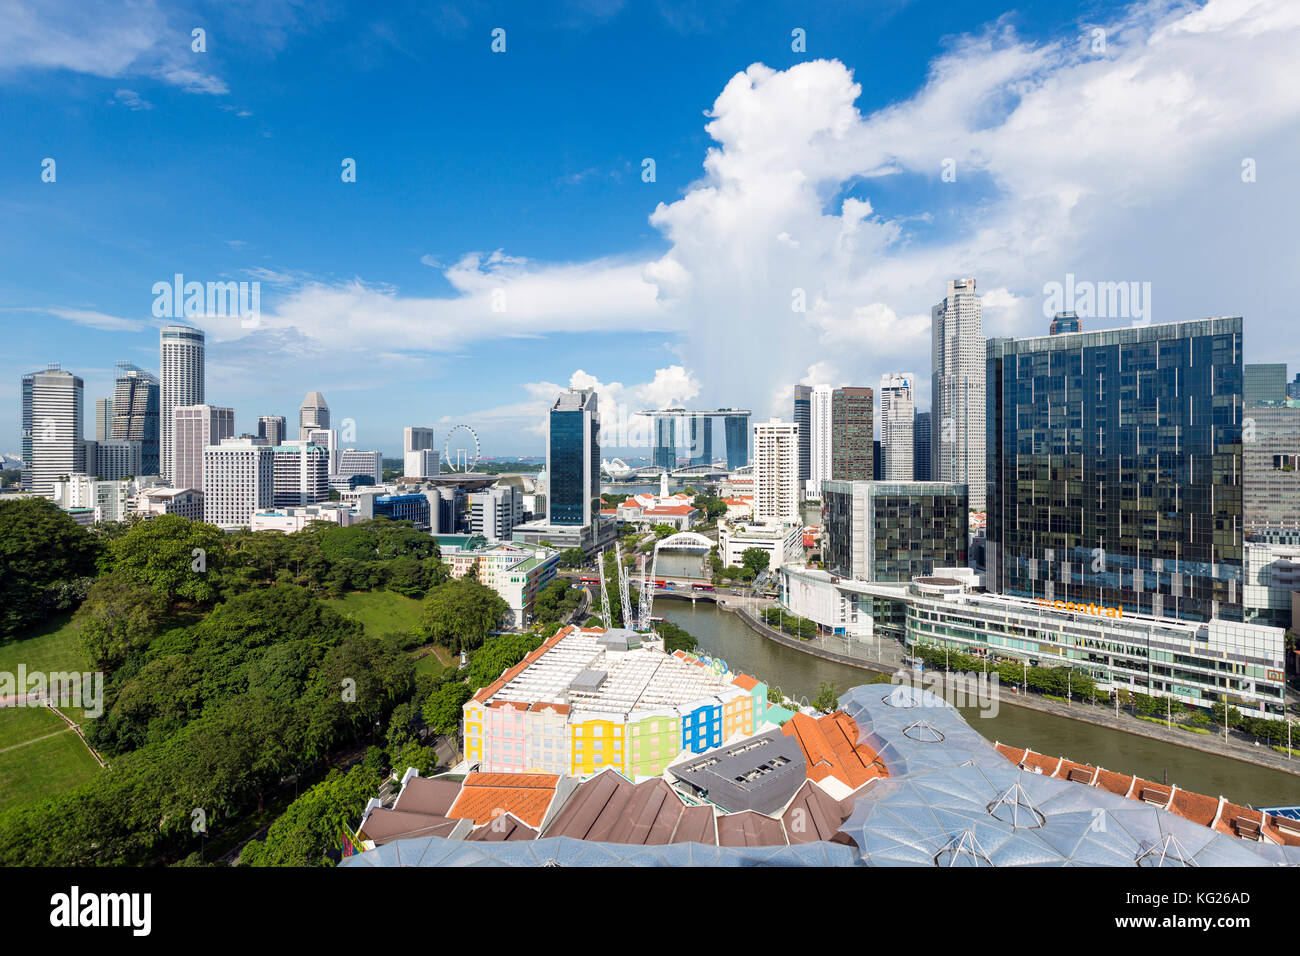 City skyline and riverside restaurants at the entertainment district of Clarke Quay, Singapore, Southeast Asia, - Stock Image